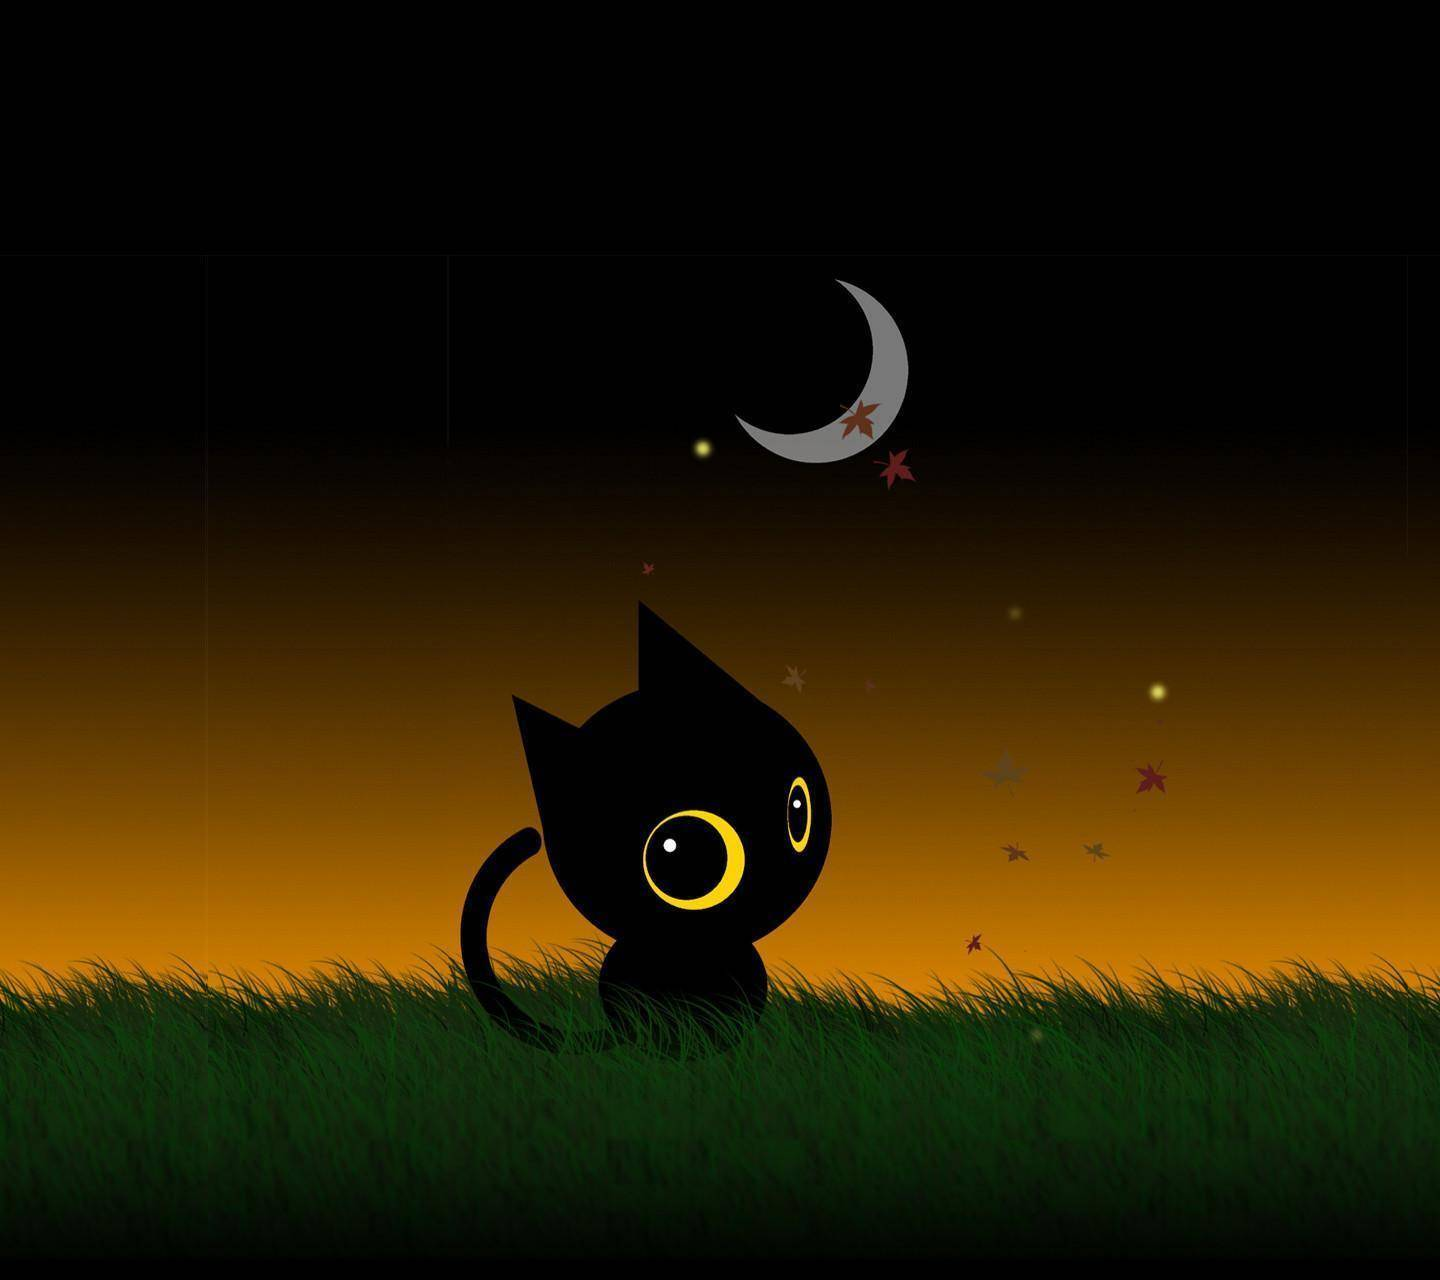 The Black Cat Wallpaper By Ulandeui1907 E5 Free On Zedge